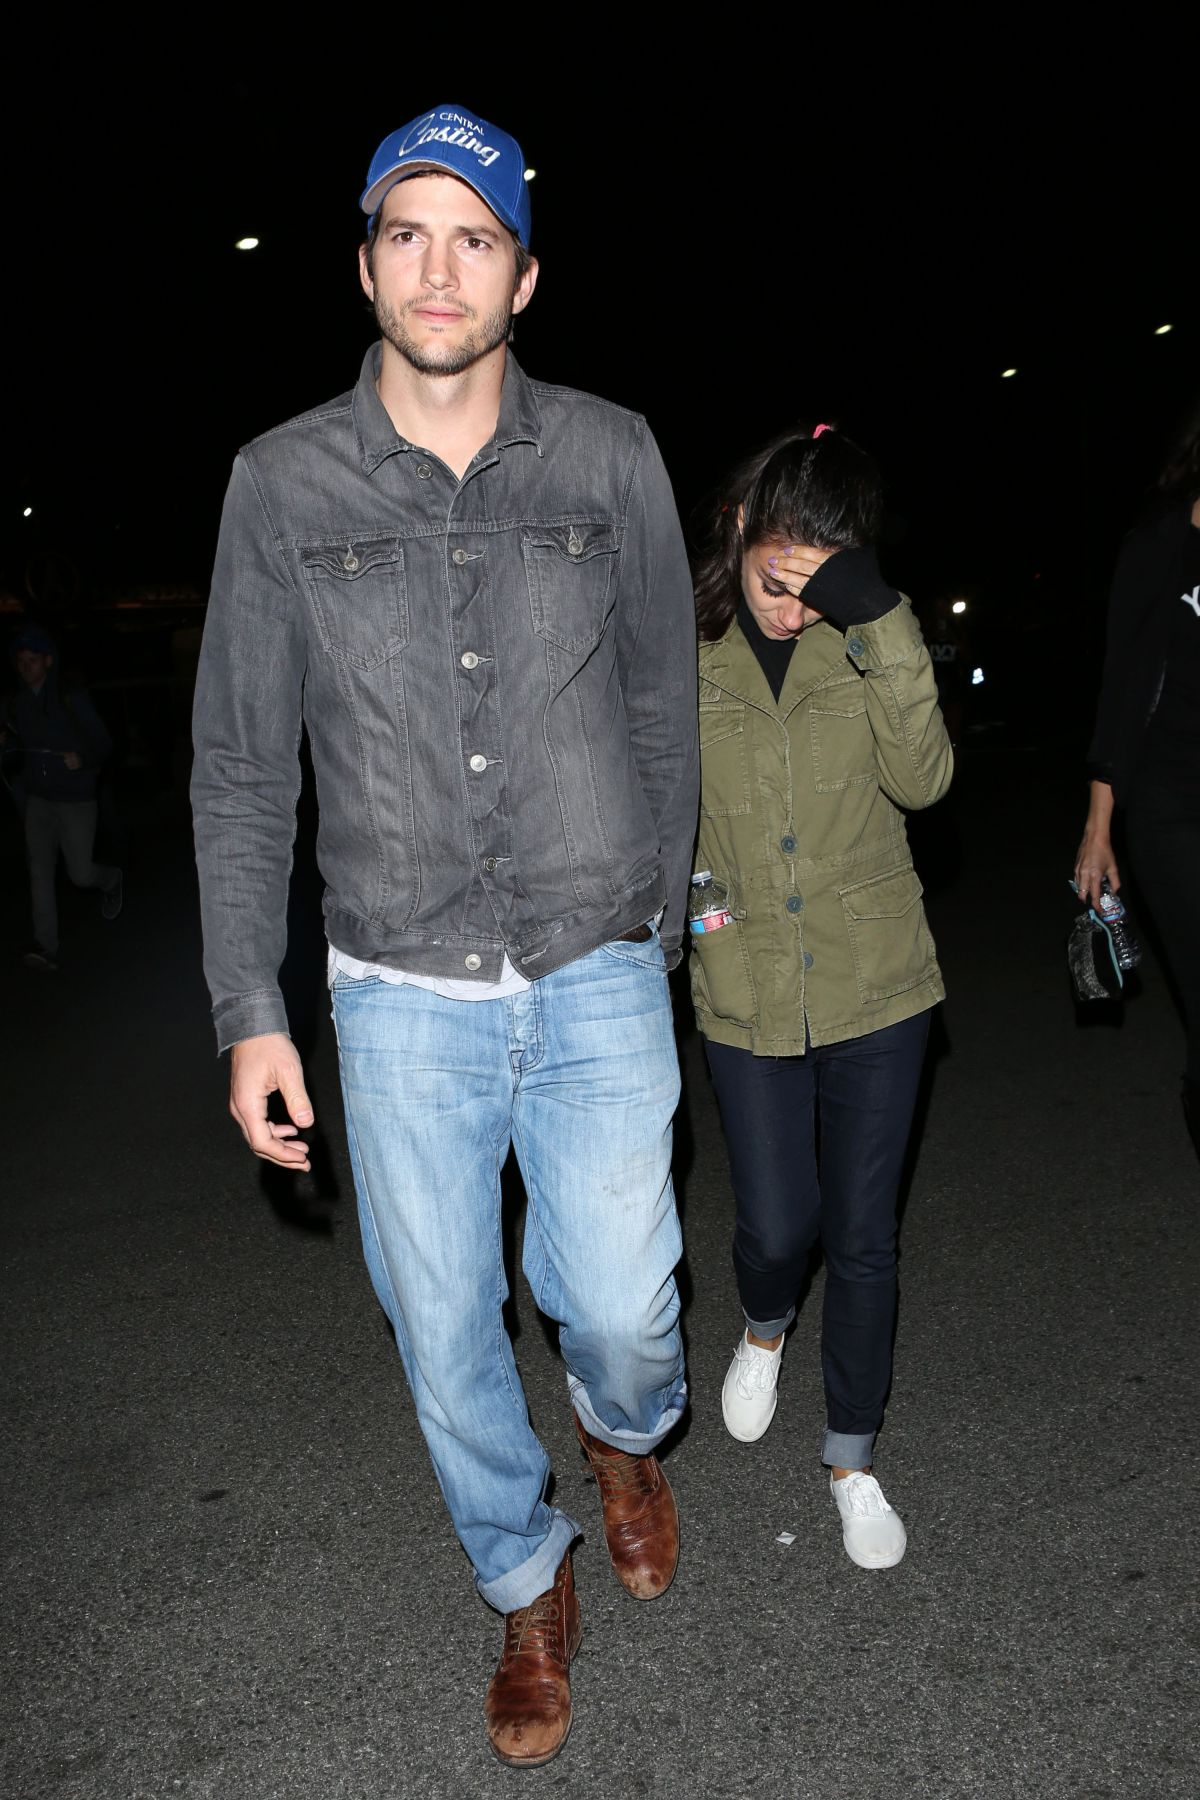 MILA KUNIS and Ashton Kutcher Arrives at Rose Bowl in Pasadena 05/14 ... Ashton Kutcher